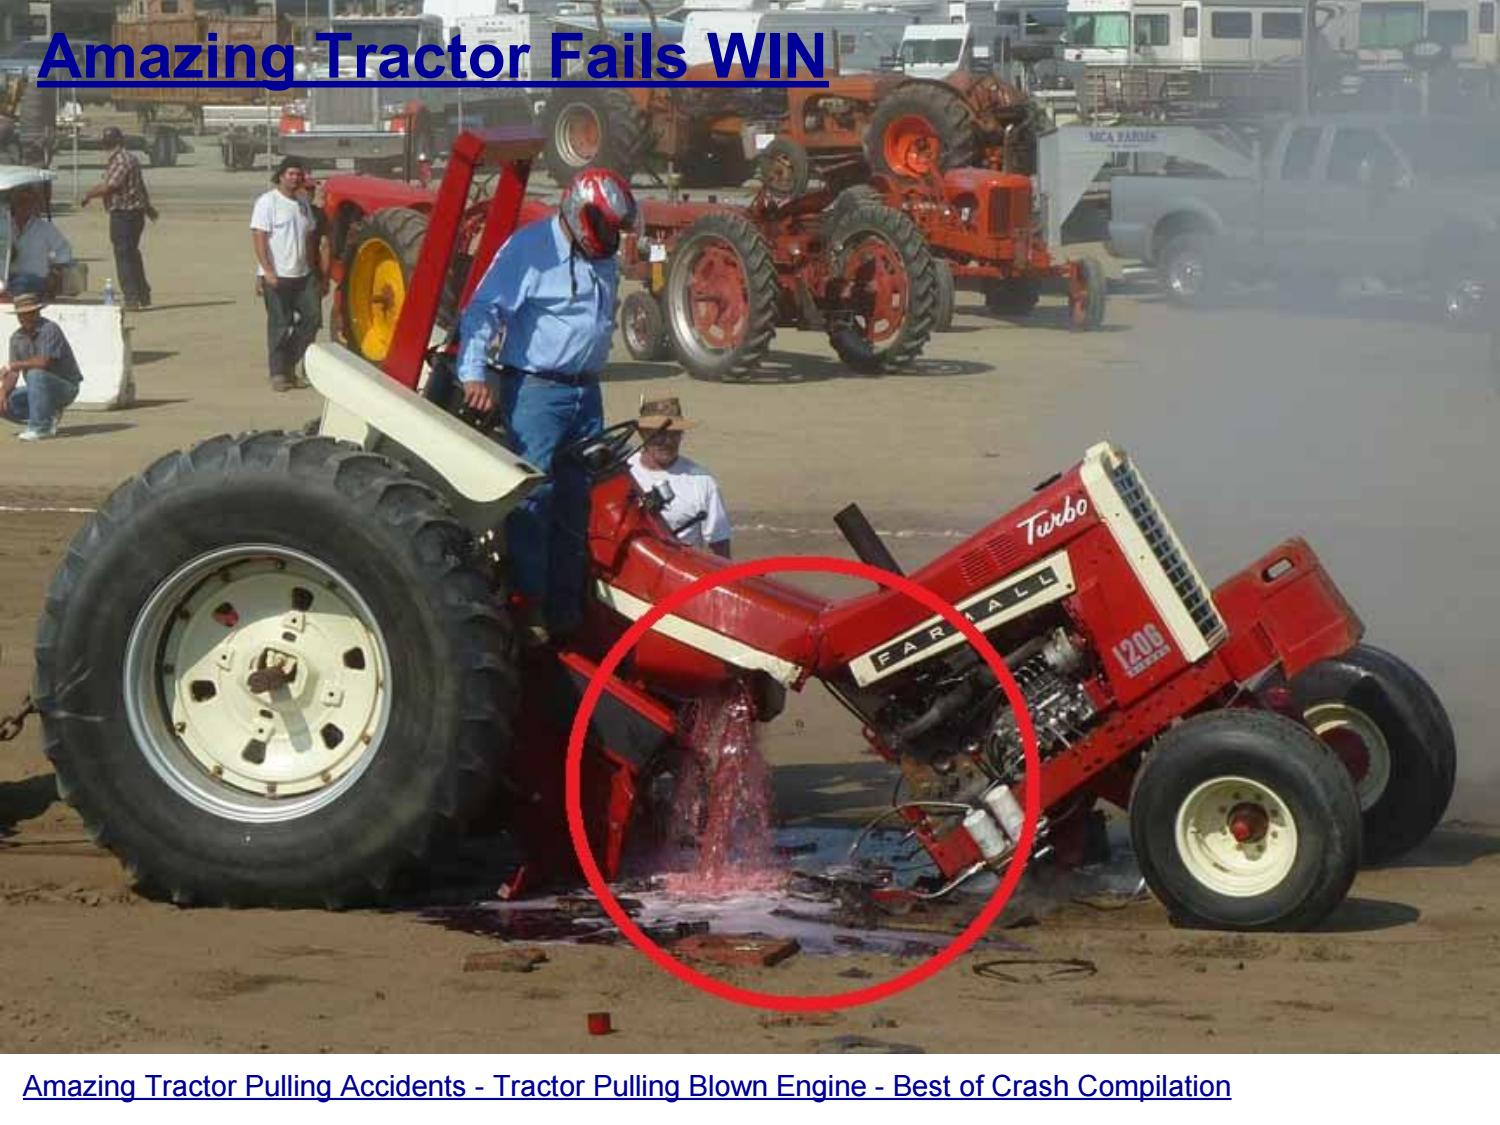 Garden Tractor Pulling Crashes : Amazing tractor pulling accidents blown